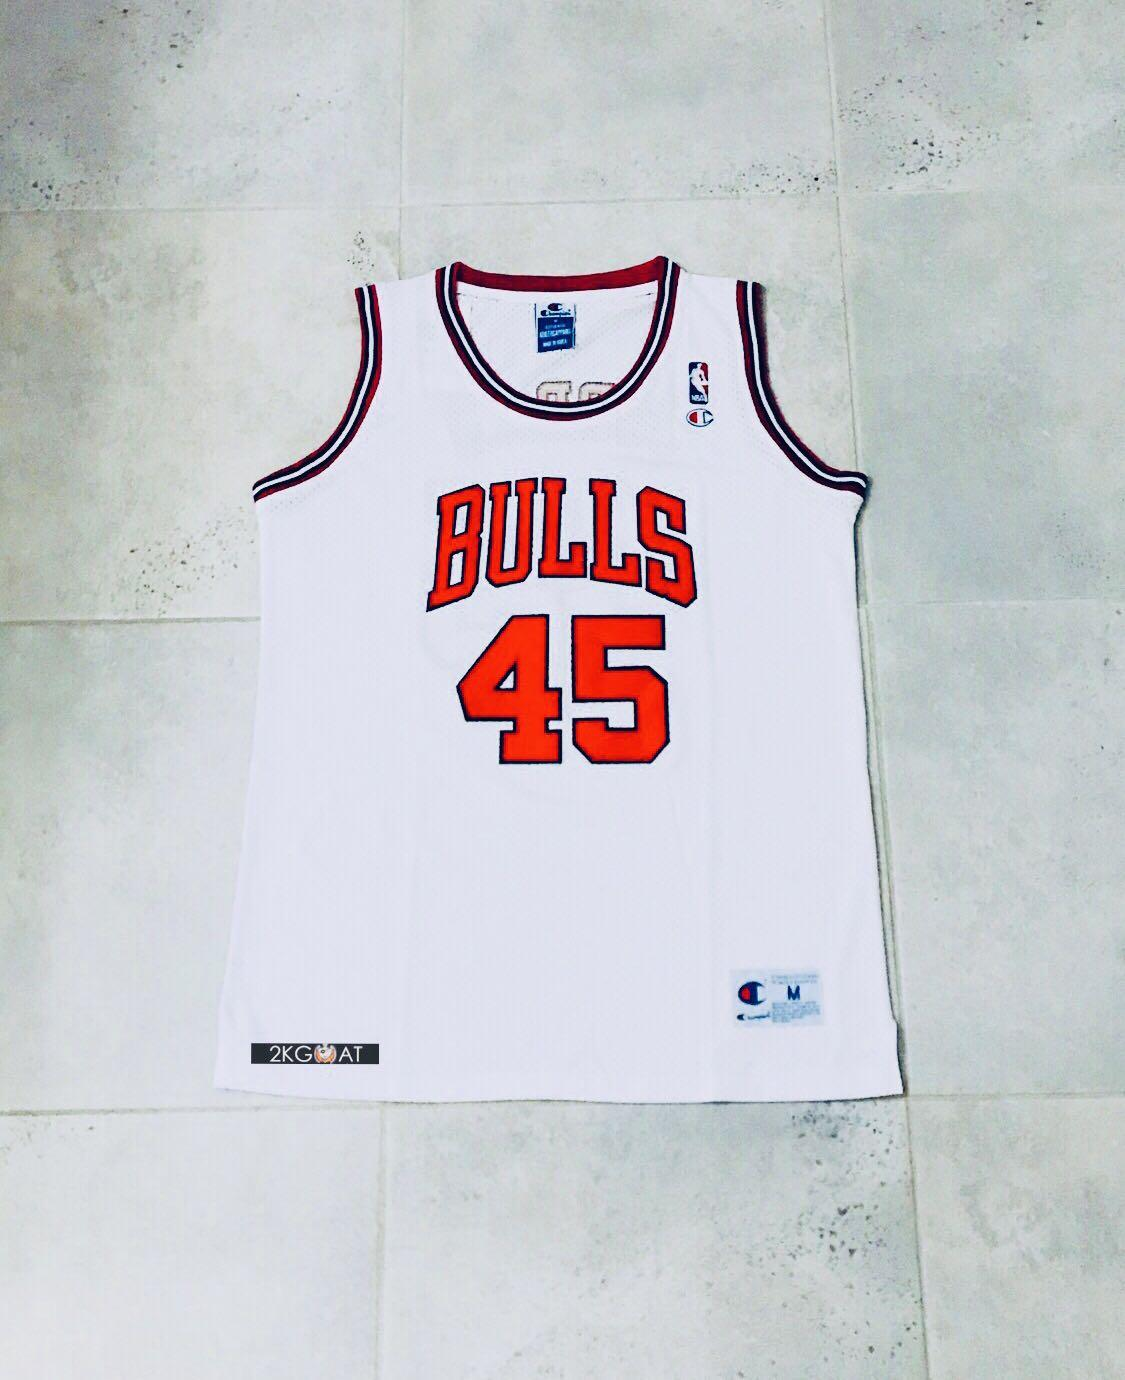 huge selection of 4b5ef b67c1 Michael Jordan 45 RARE NBA Basketball Jersey, Men's Fashion ...